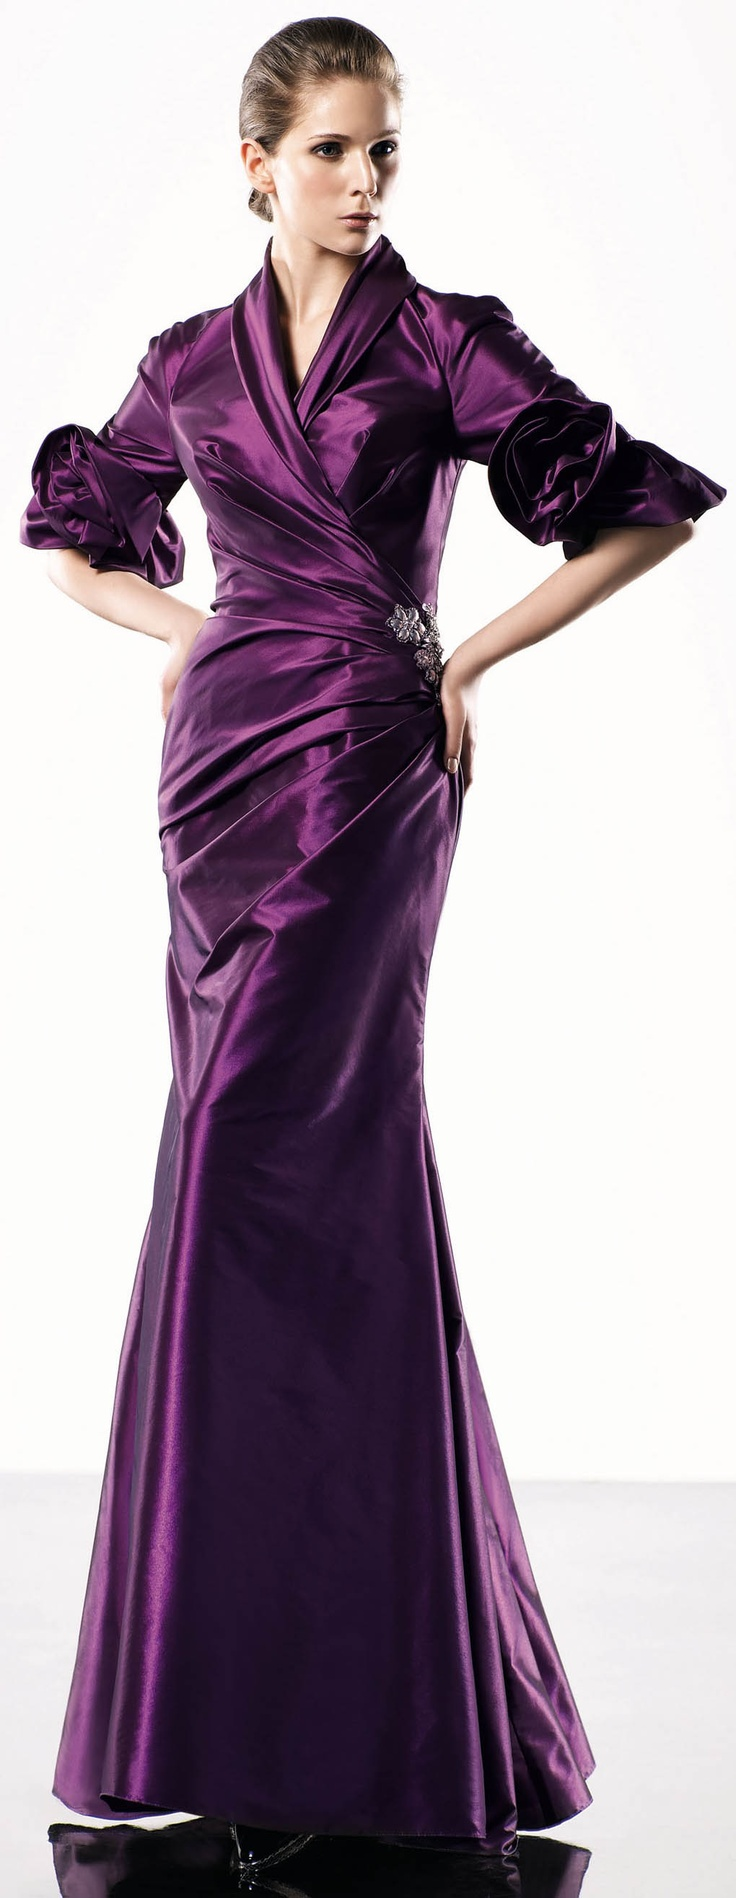 160 best eggplant style images on pinterest bridesmaids half sleeve floor length deep plum colored gown how exquisitely beautiful ombrellifo Images